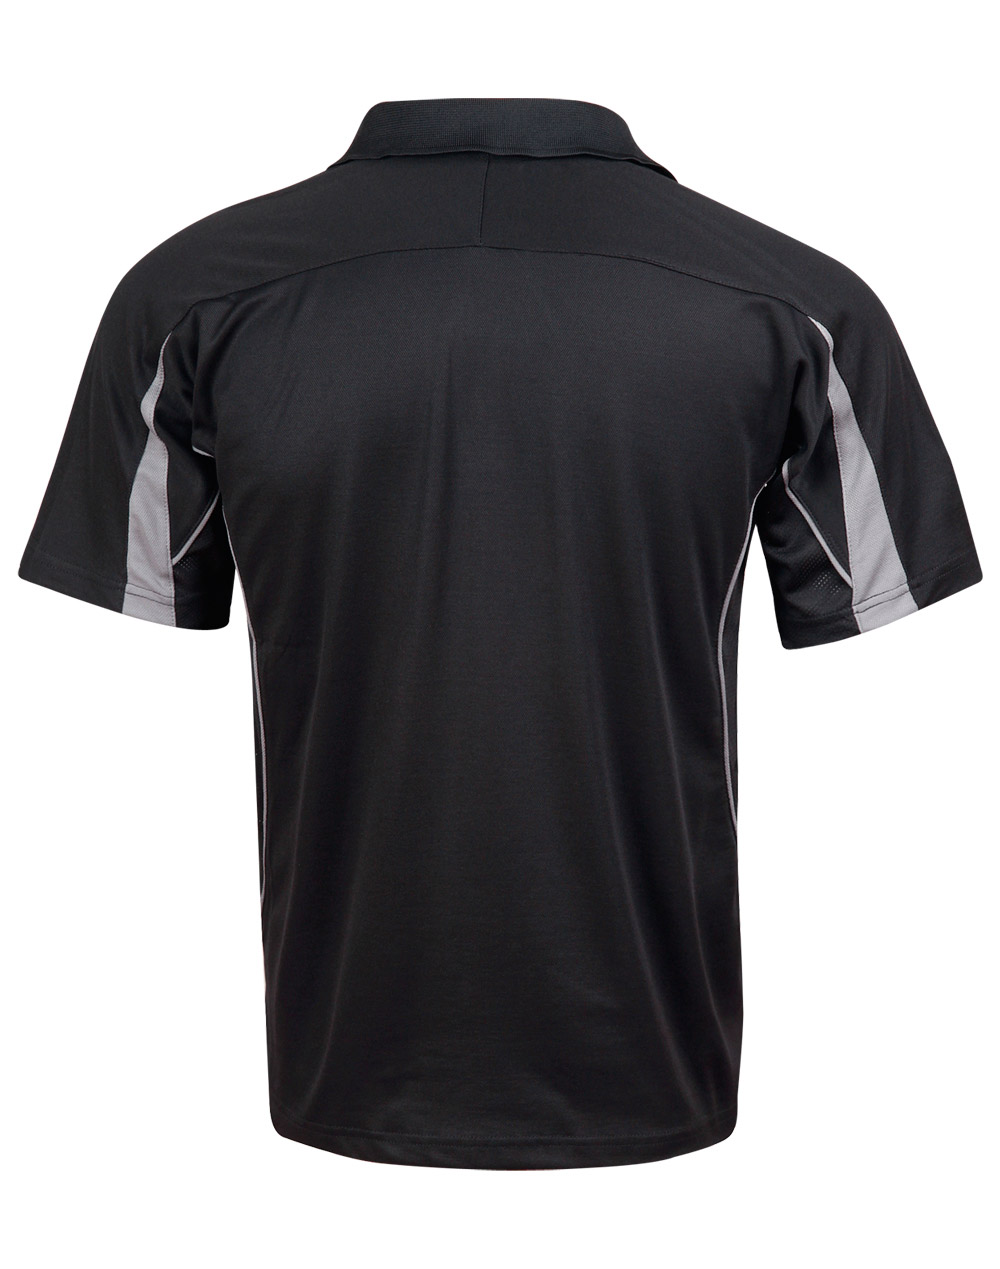 https://s3-ap-southeast-1.amazonaws.com/ws-imgs/POLOSHIRTS/PS53_BlackAsh_Back.jpg